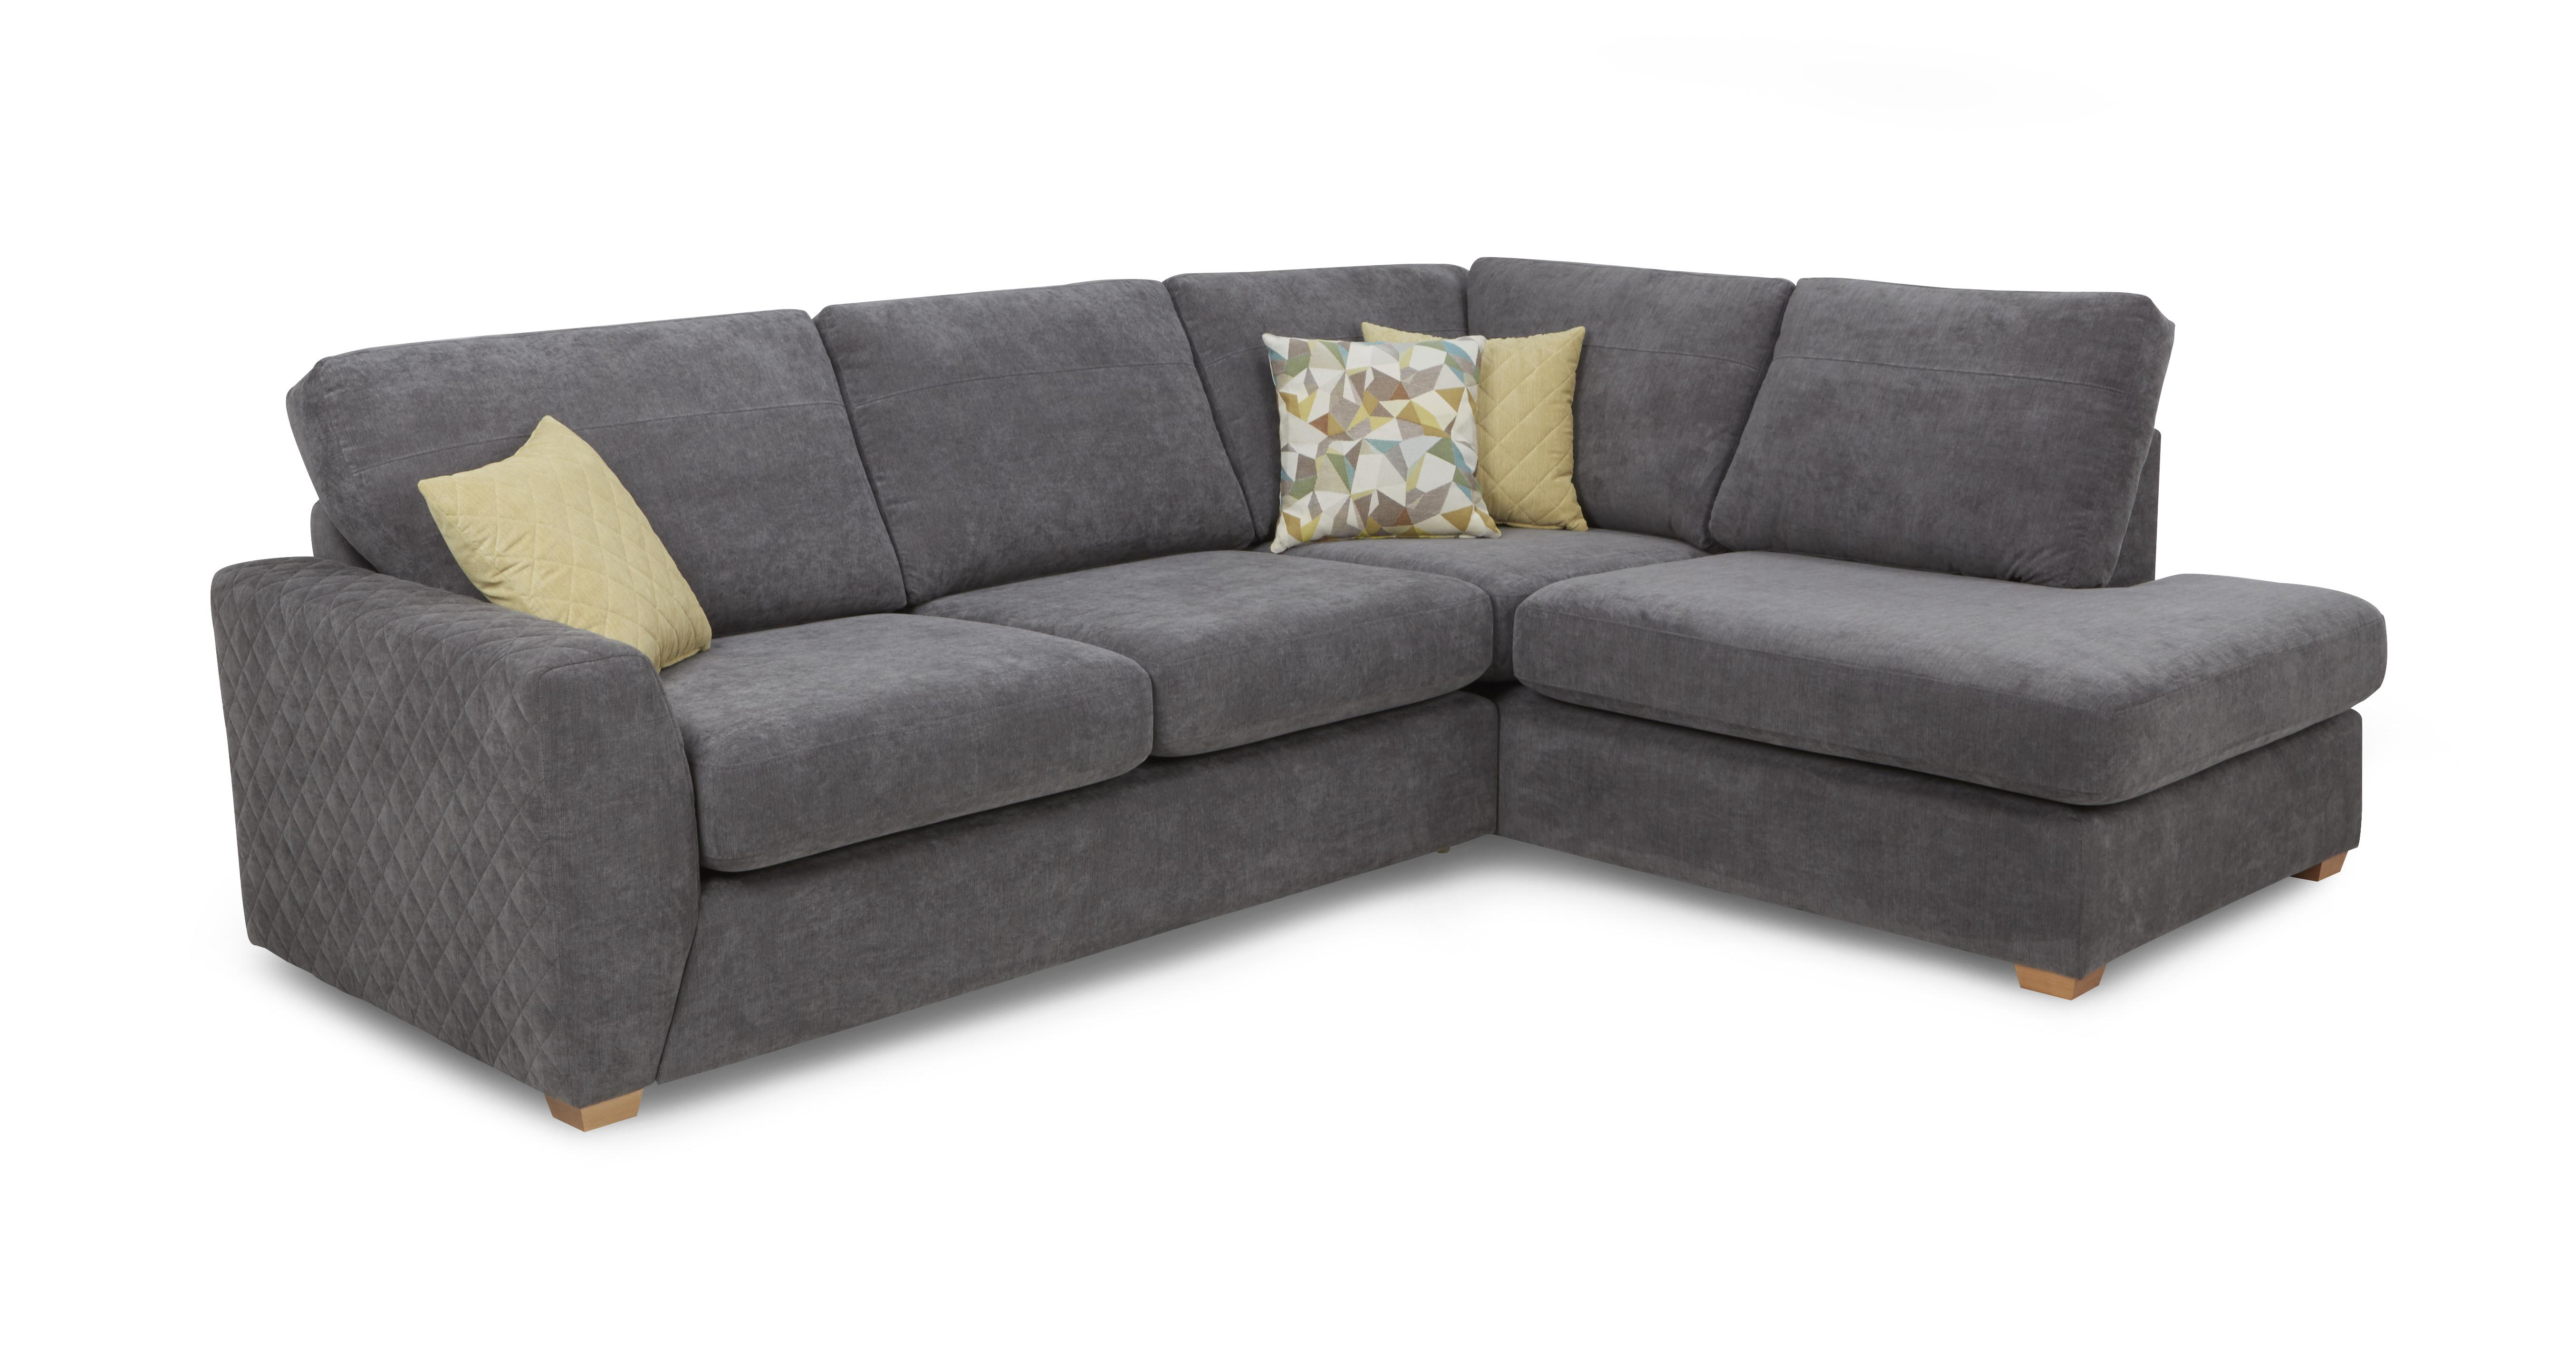 Astaire Clearance Left Arm Facing Open End Corner Sofa & Stool